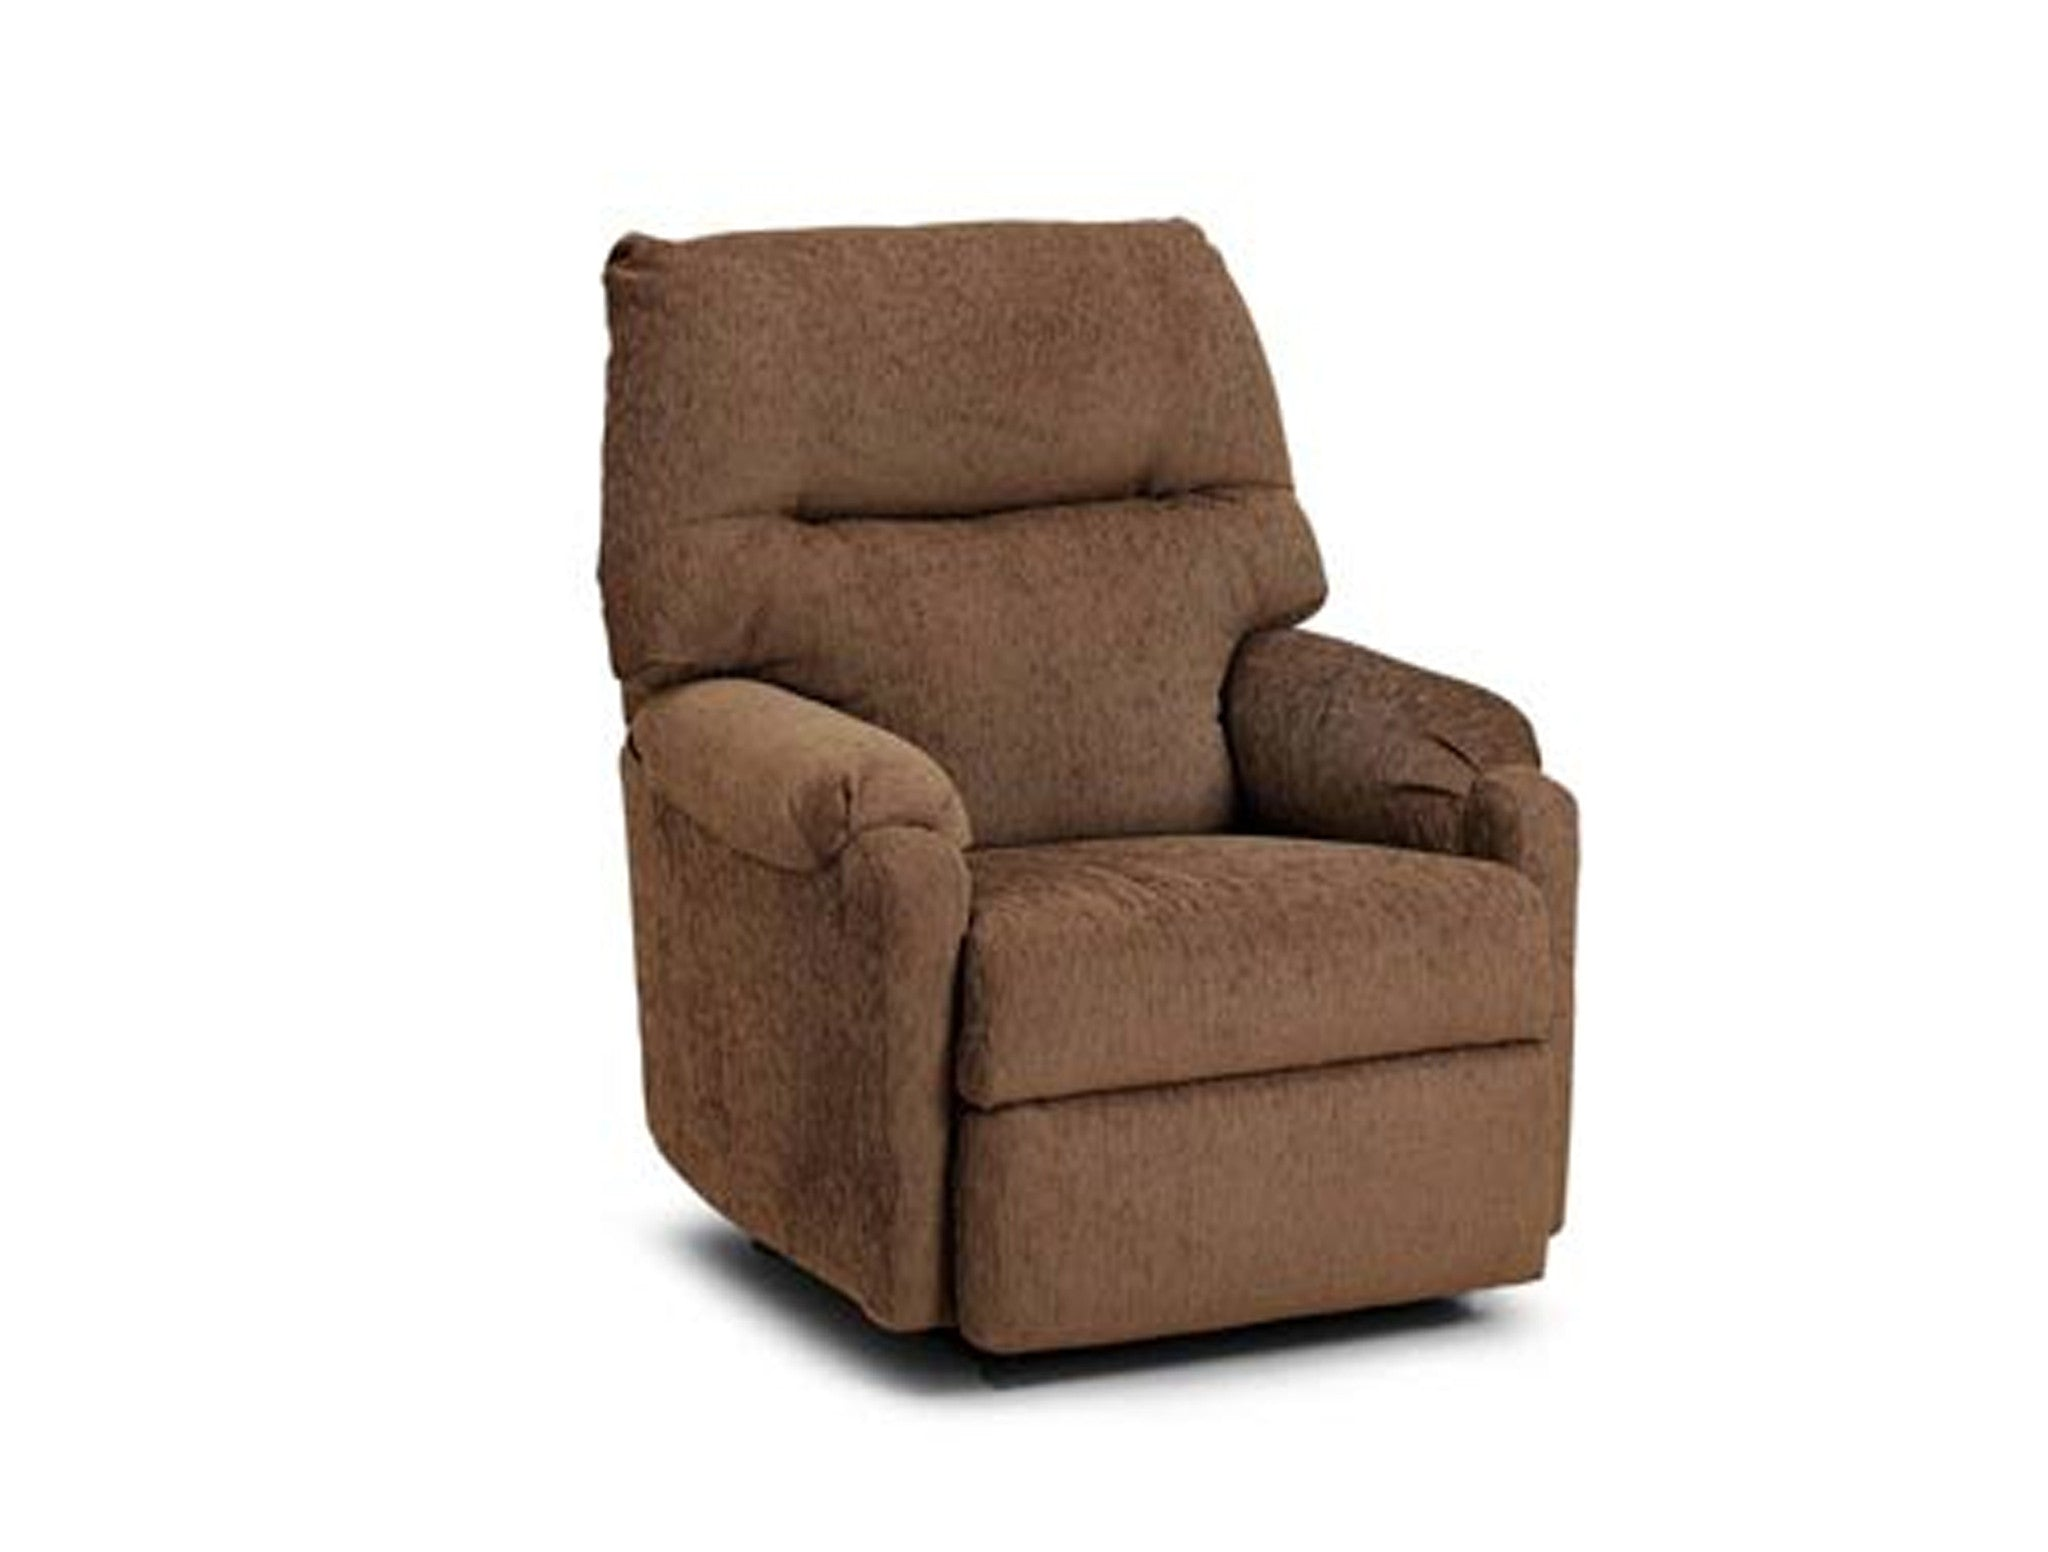 the more on corvallis chair details lift furniture chairs liftchairwebphoto